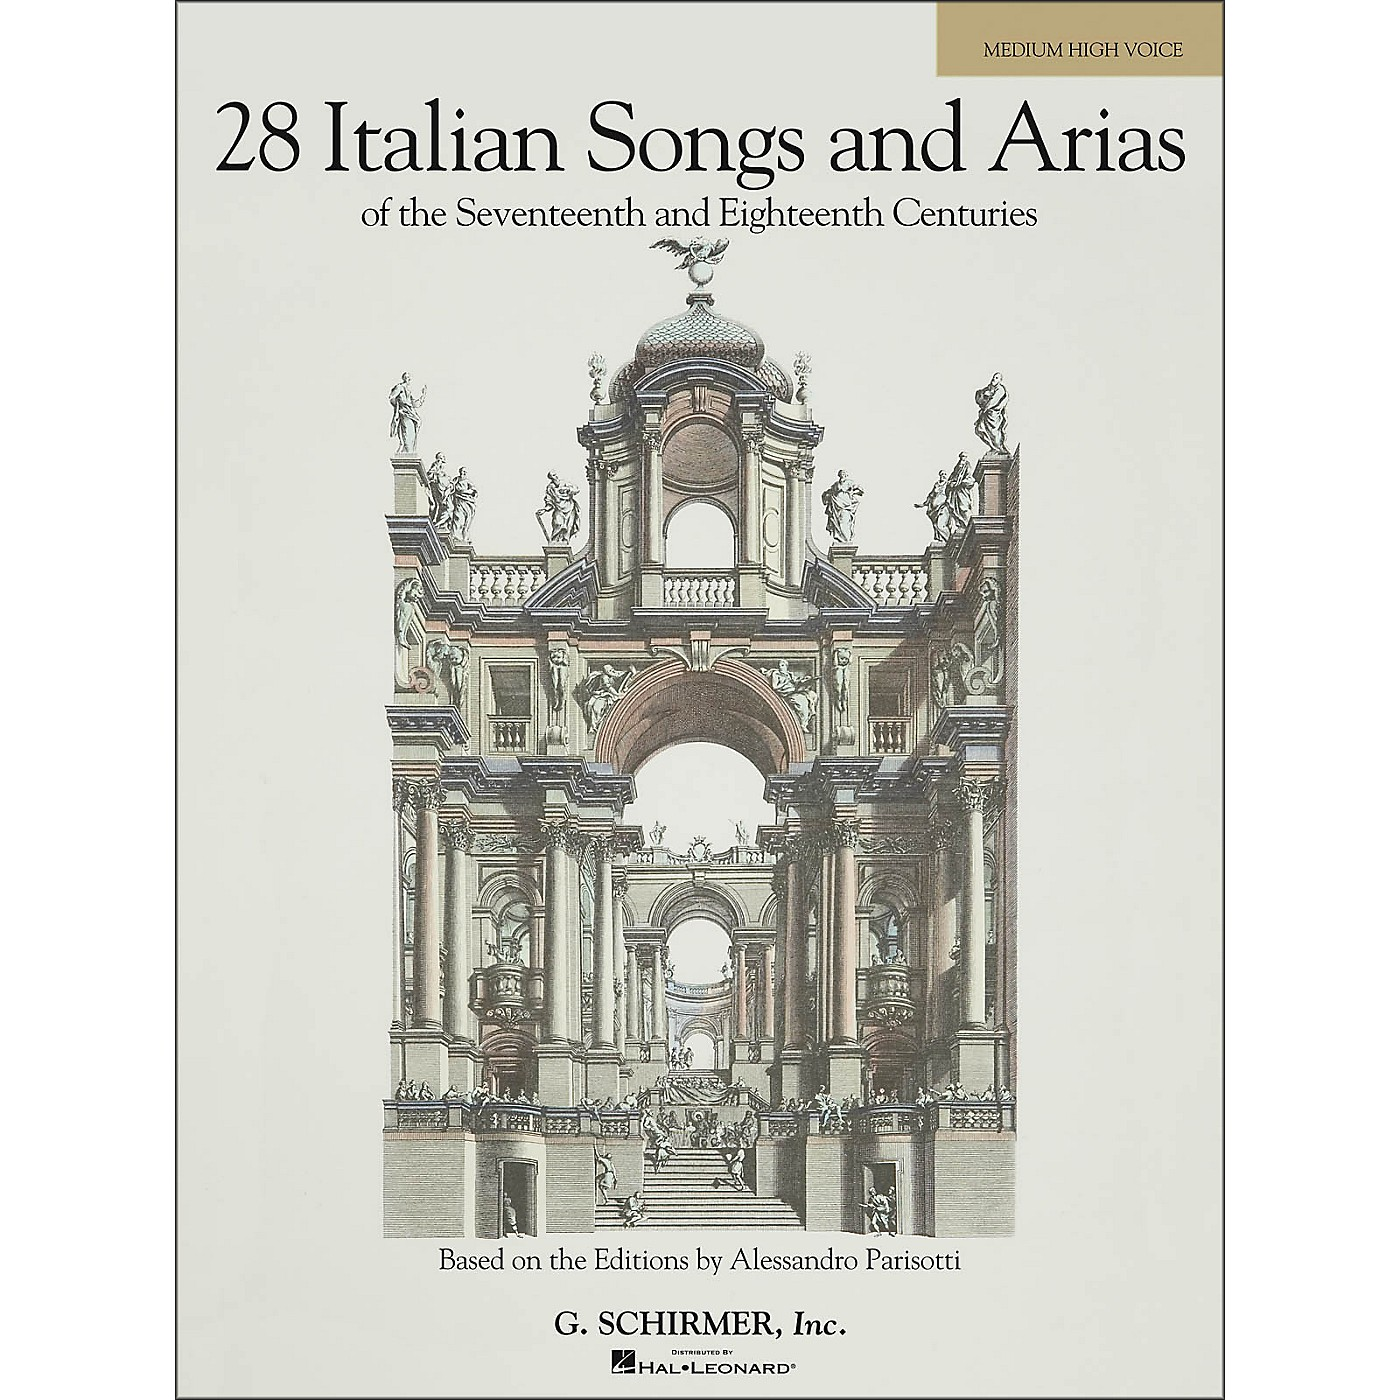 G. Schirmer 28 Italian Songs & Arias Of The 17th And 18th Centuries for Medium High Voice thumbnail